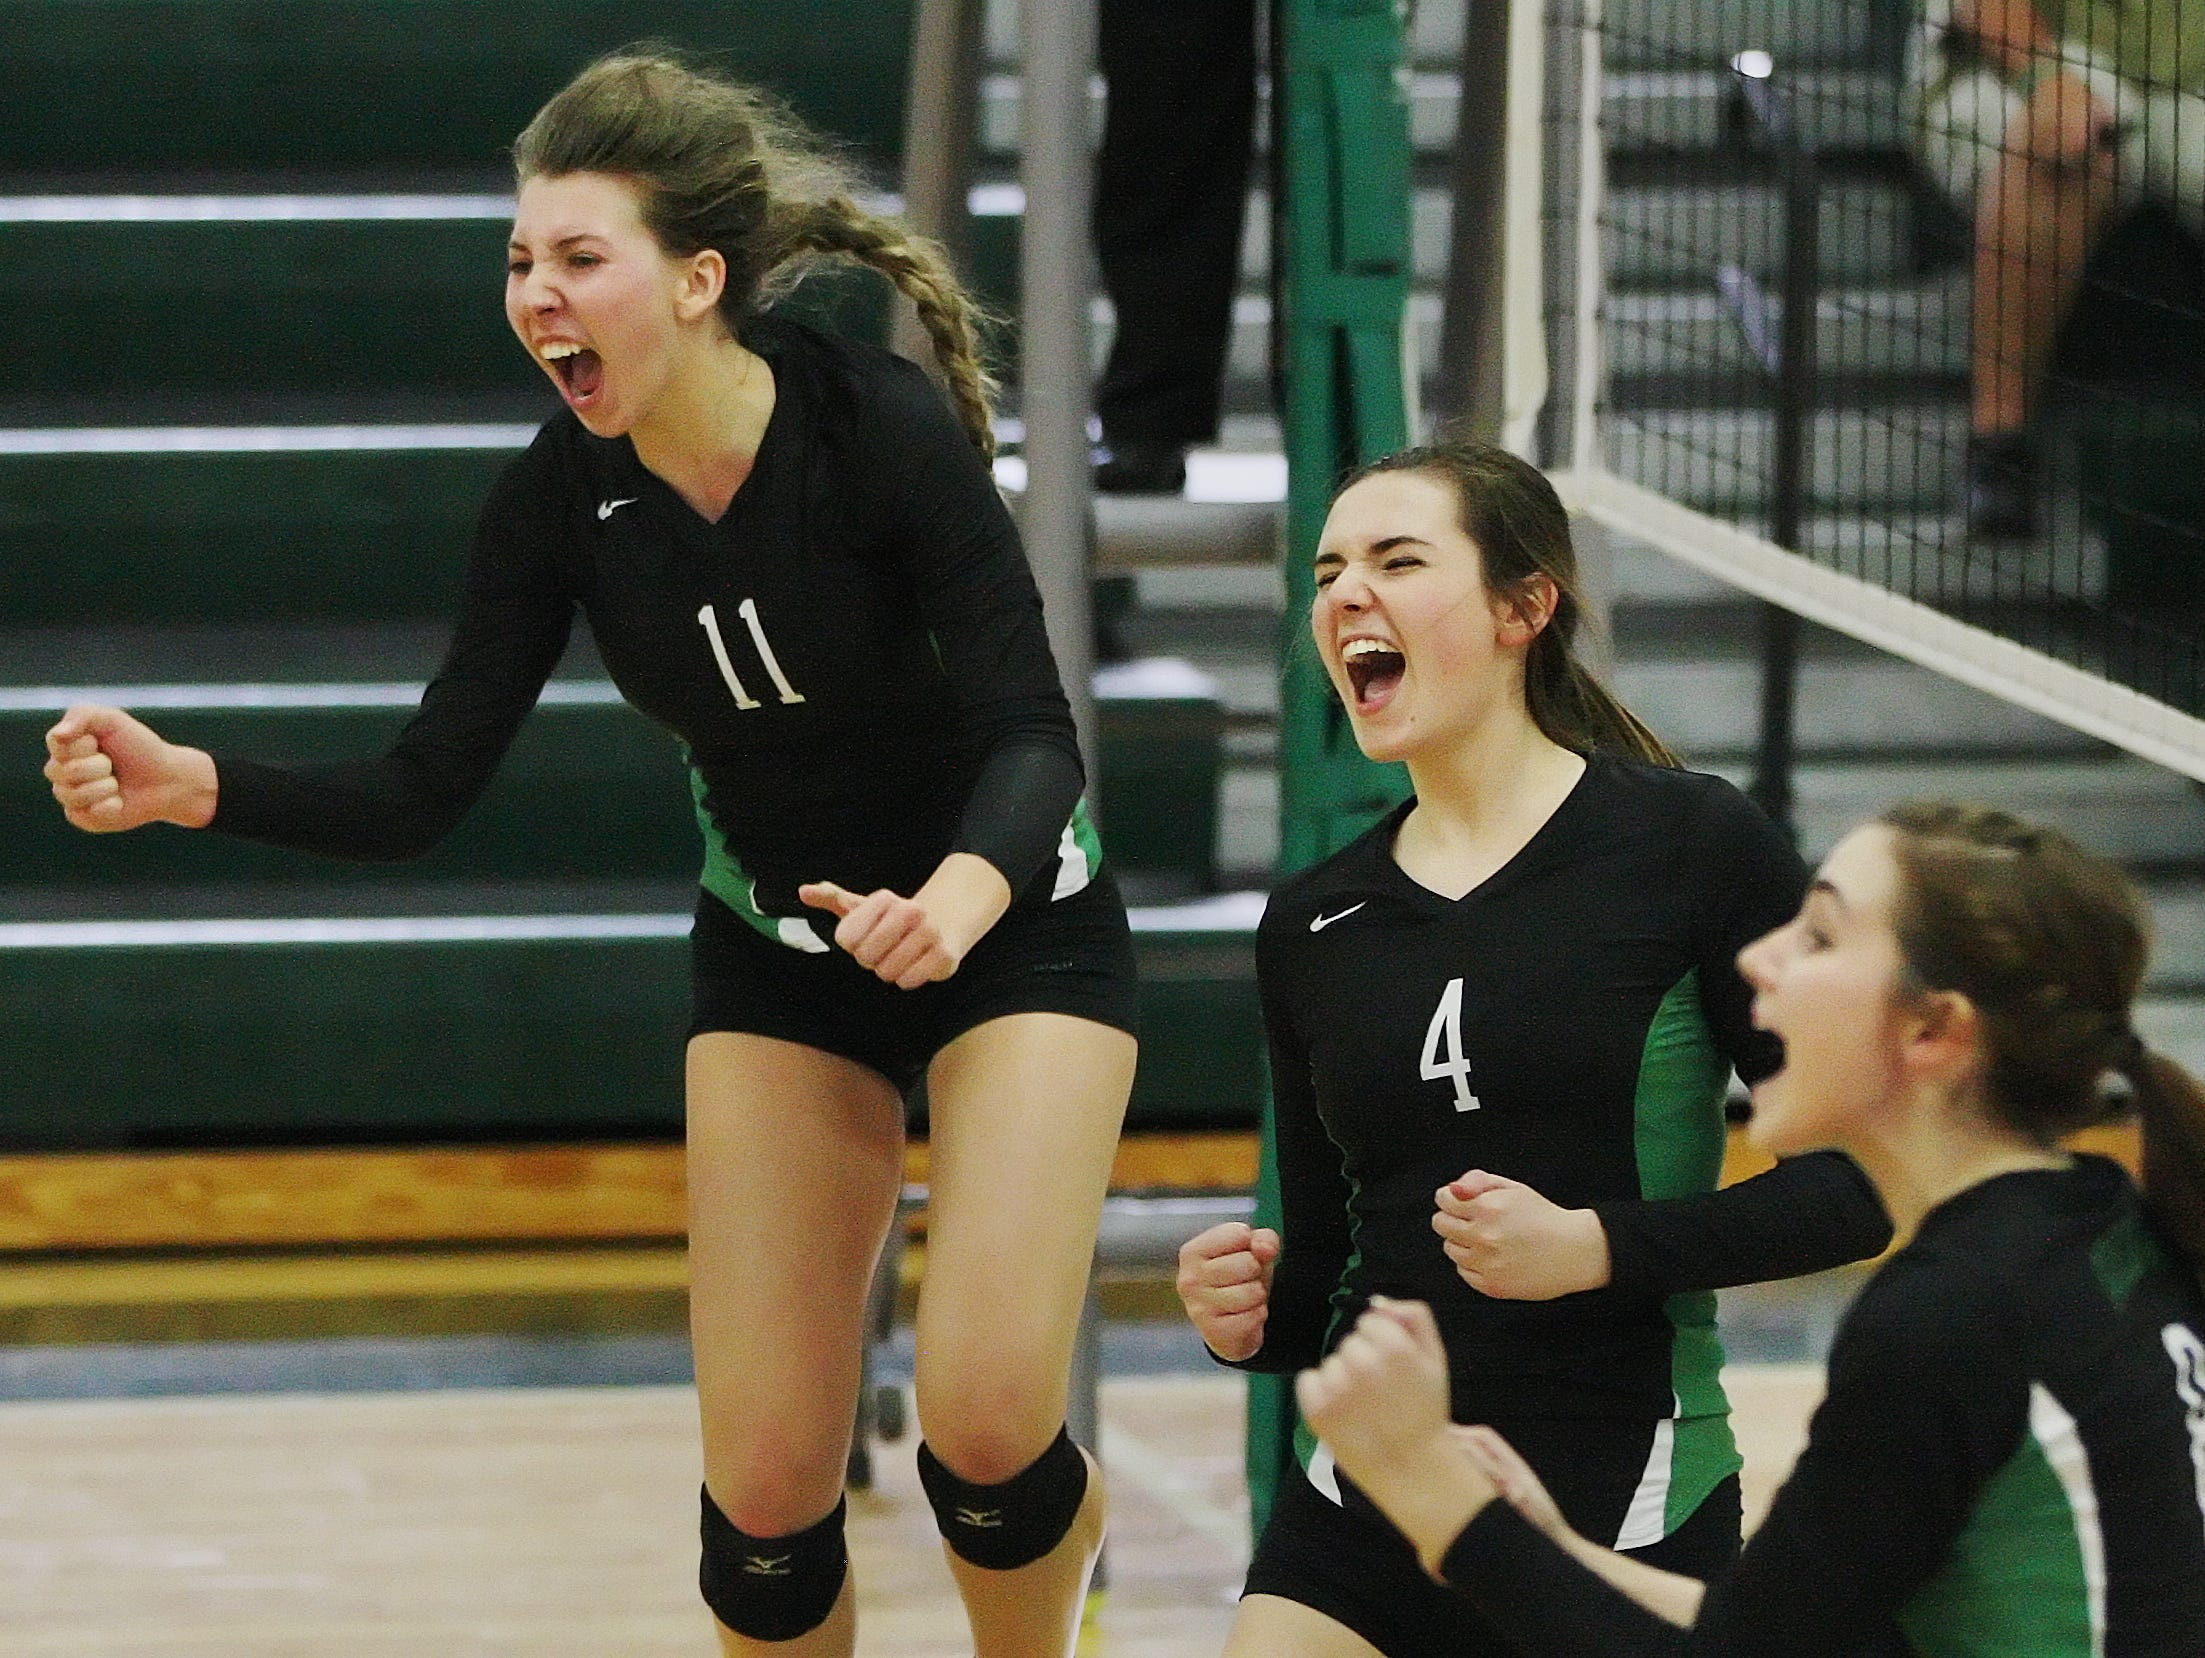 Fort Myers High School's Alayna Ryan, left, Sadie Davis, center, and Erin Gear celebrate scoring a point against Barron Collier in the Region 6A-3 semifinal volleyball game Saturday at Fort Myers High School. Fort Myers beat Barron Collier 3-0.